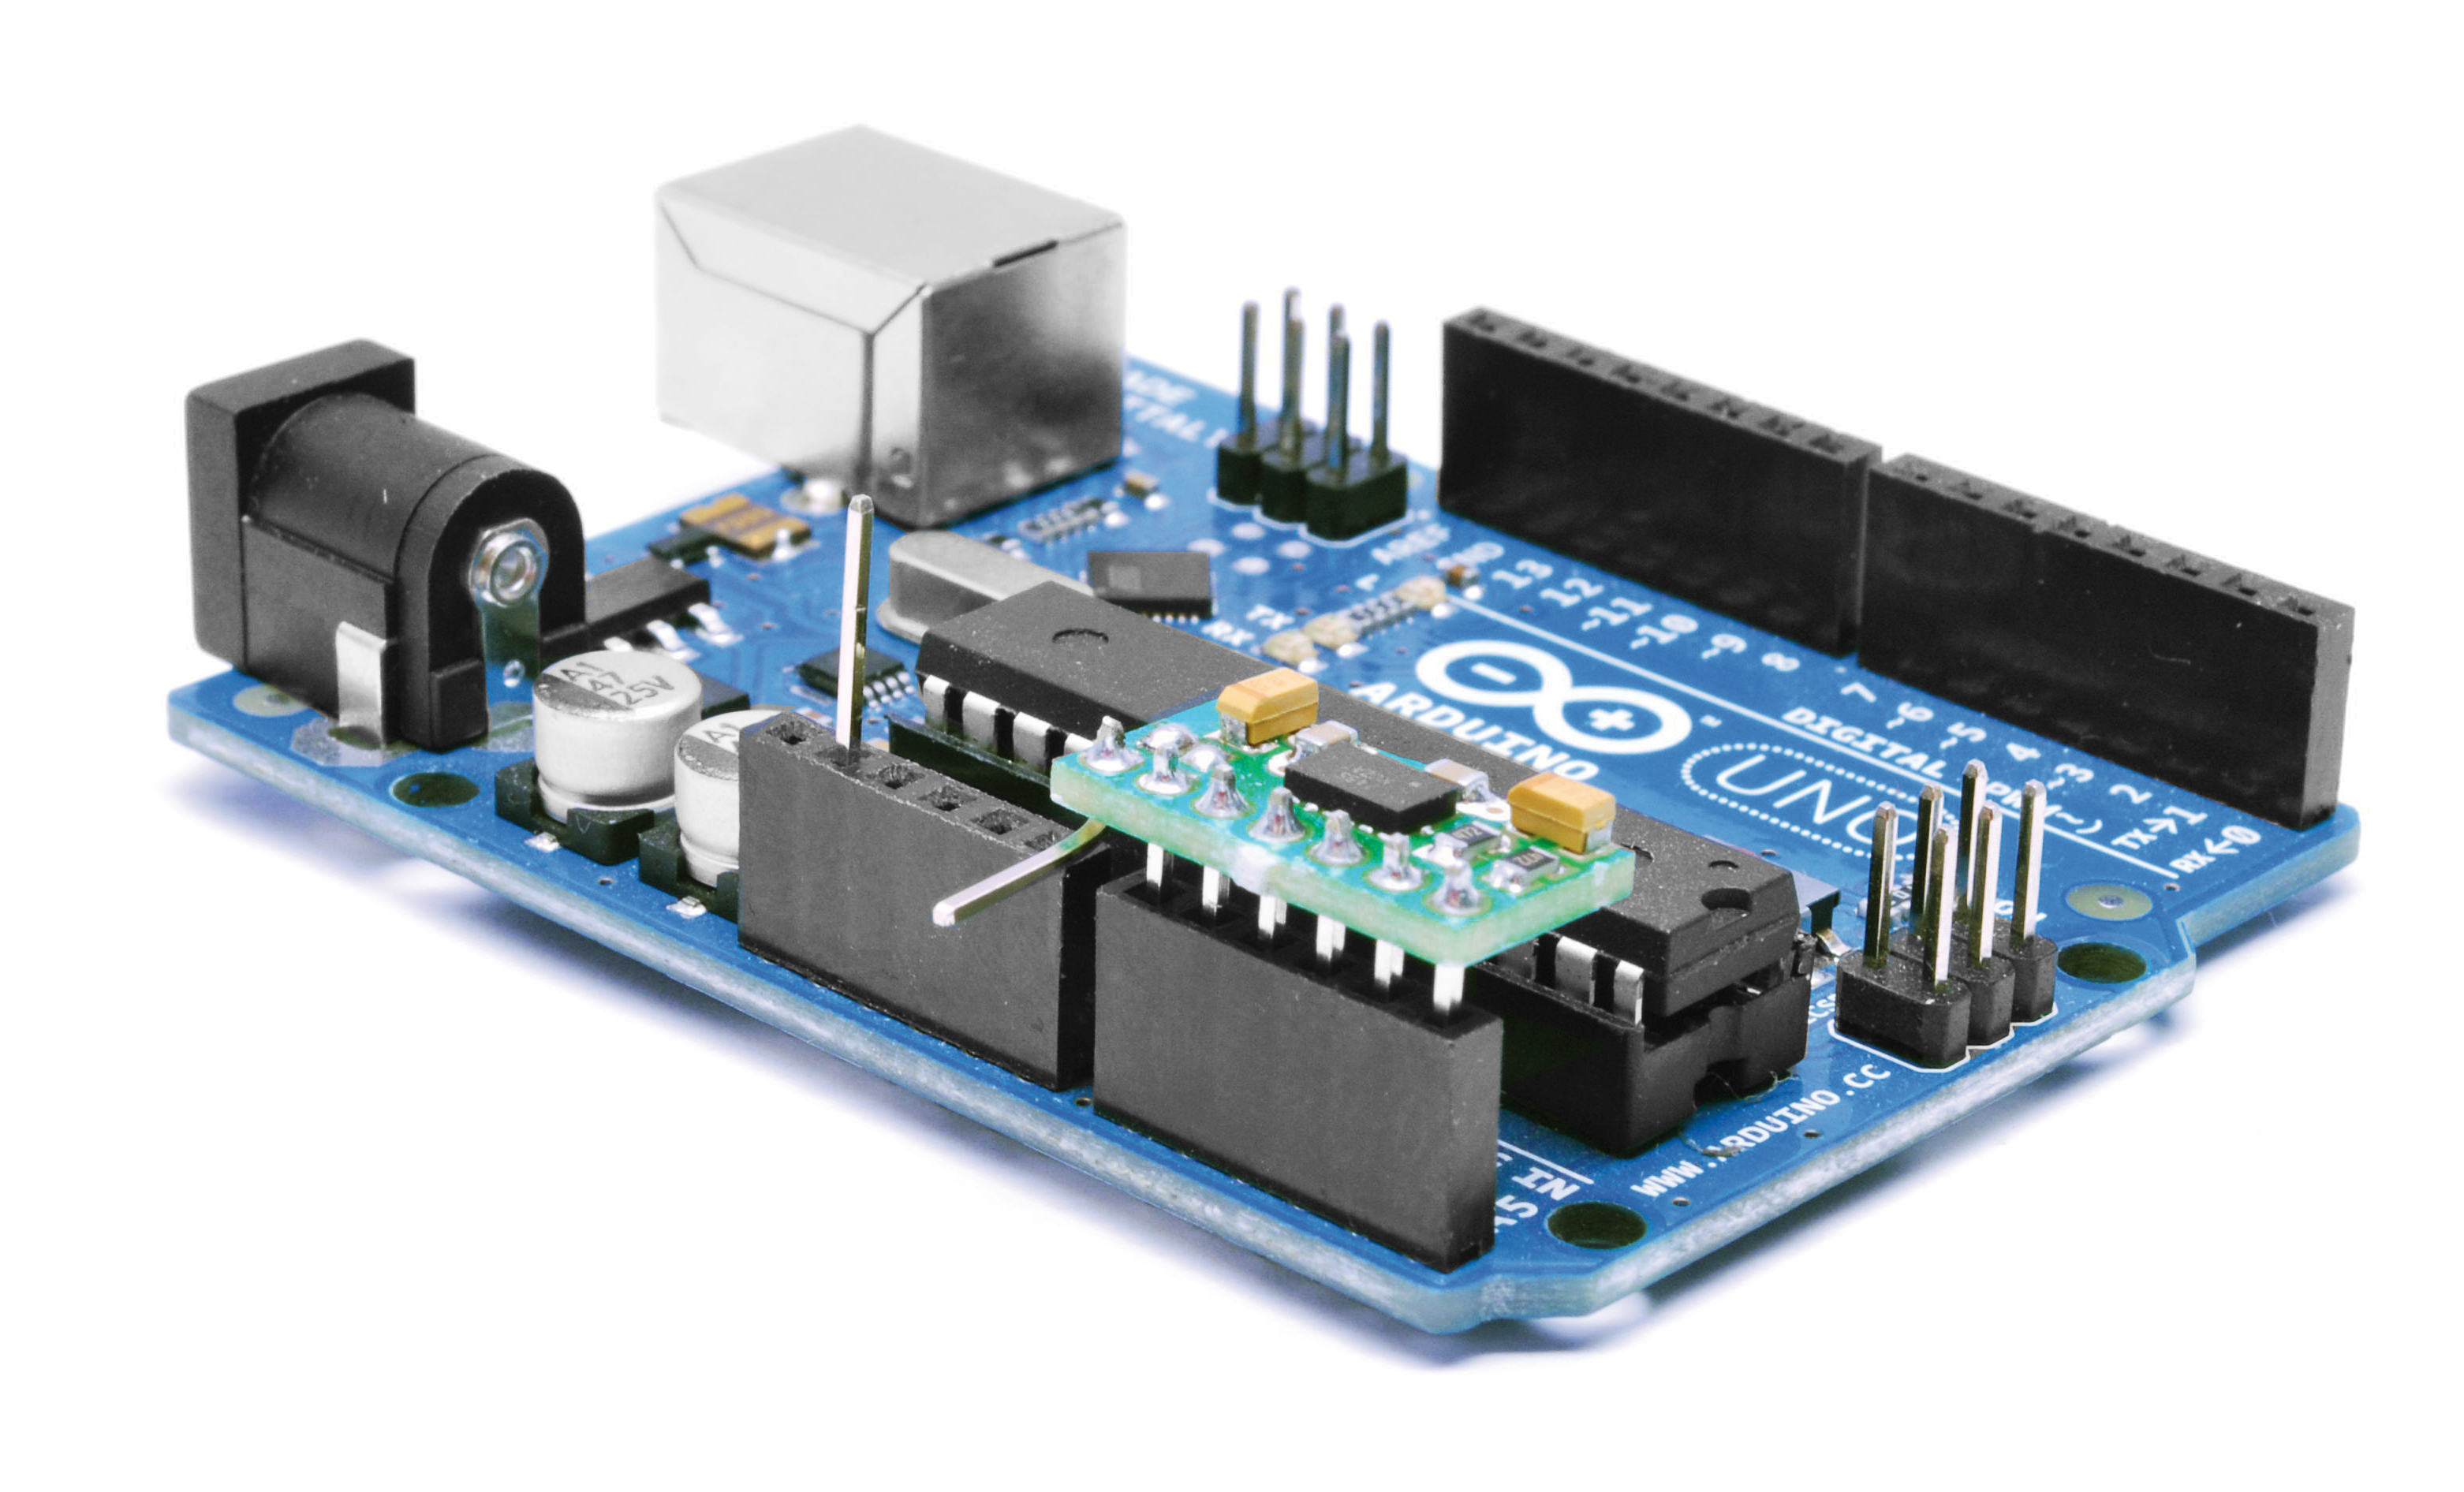 Interfacing MMA7361 accelerometer to Arduino